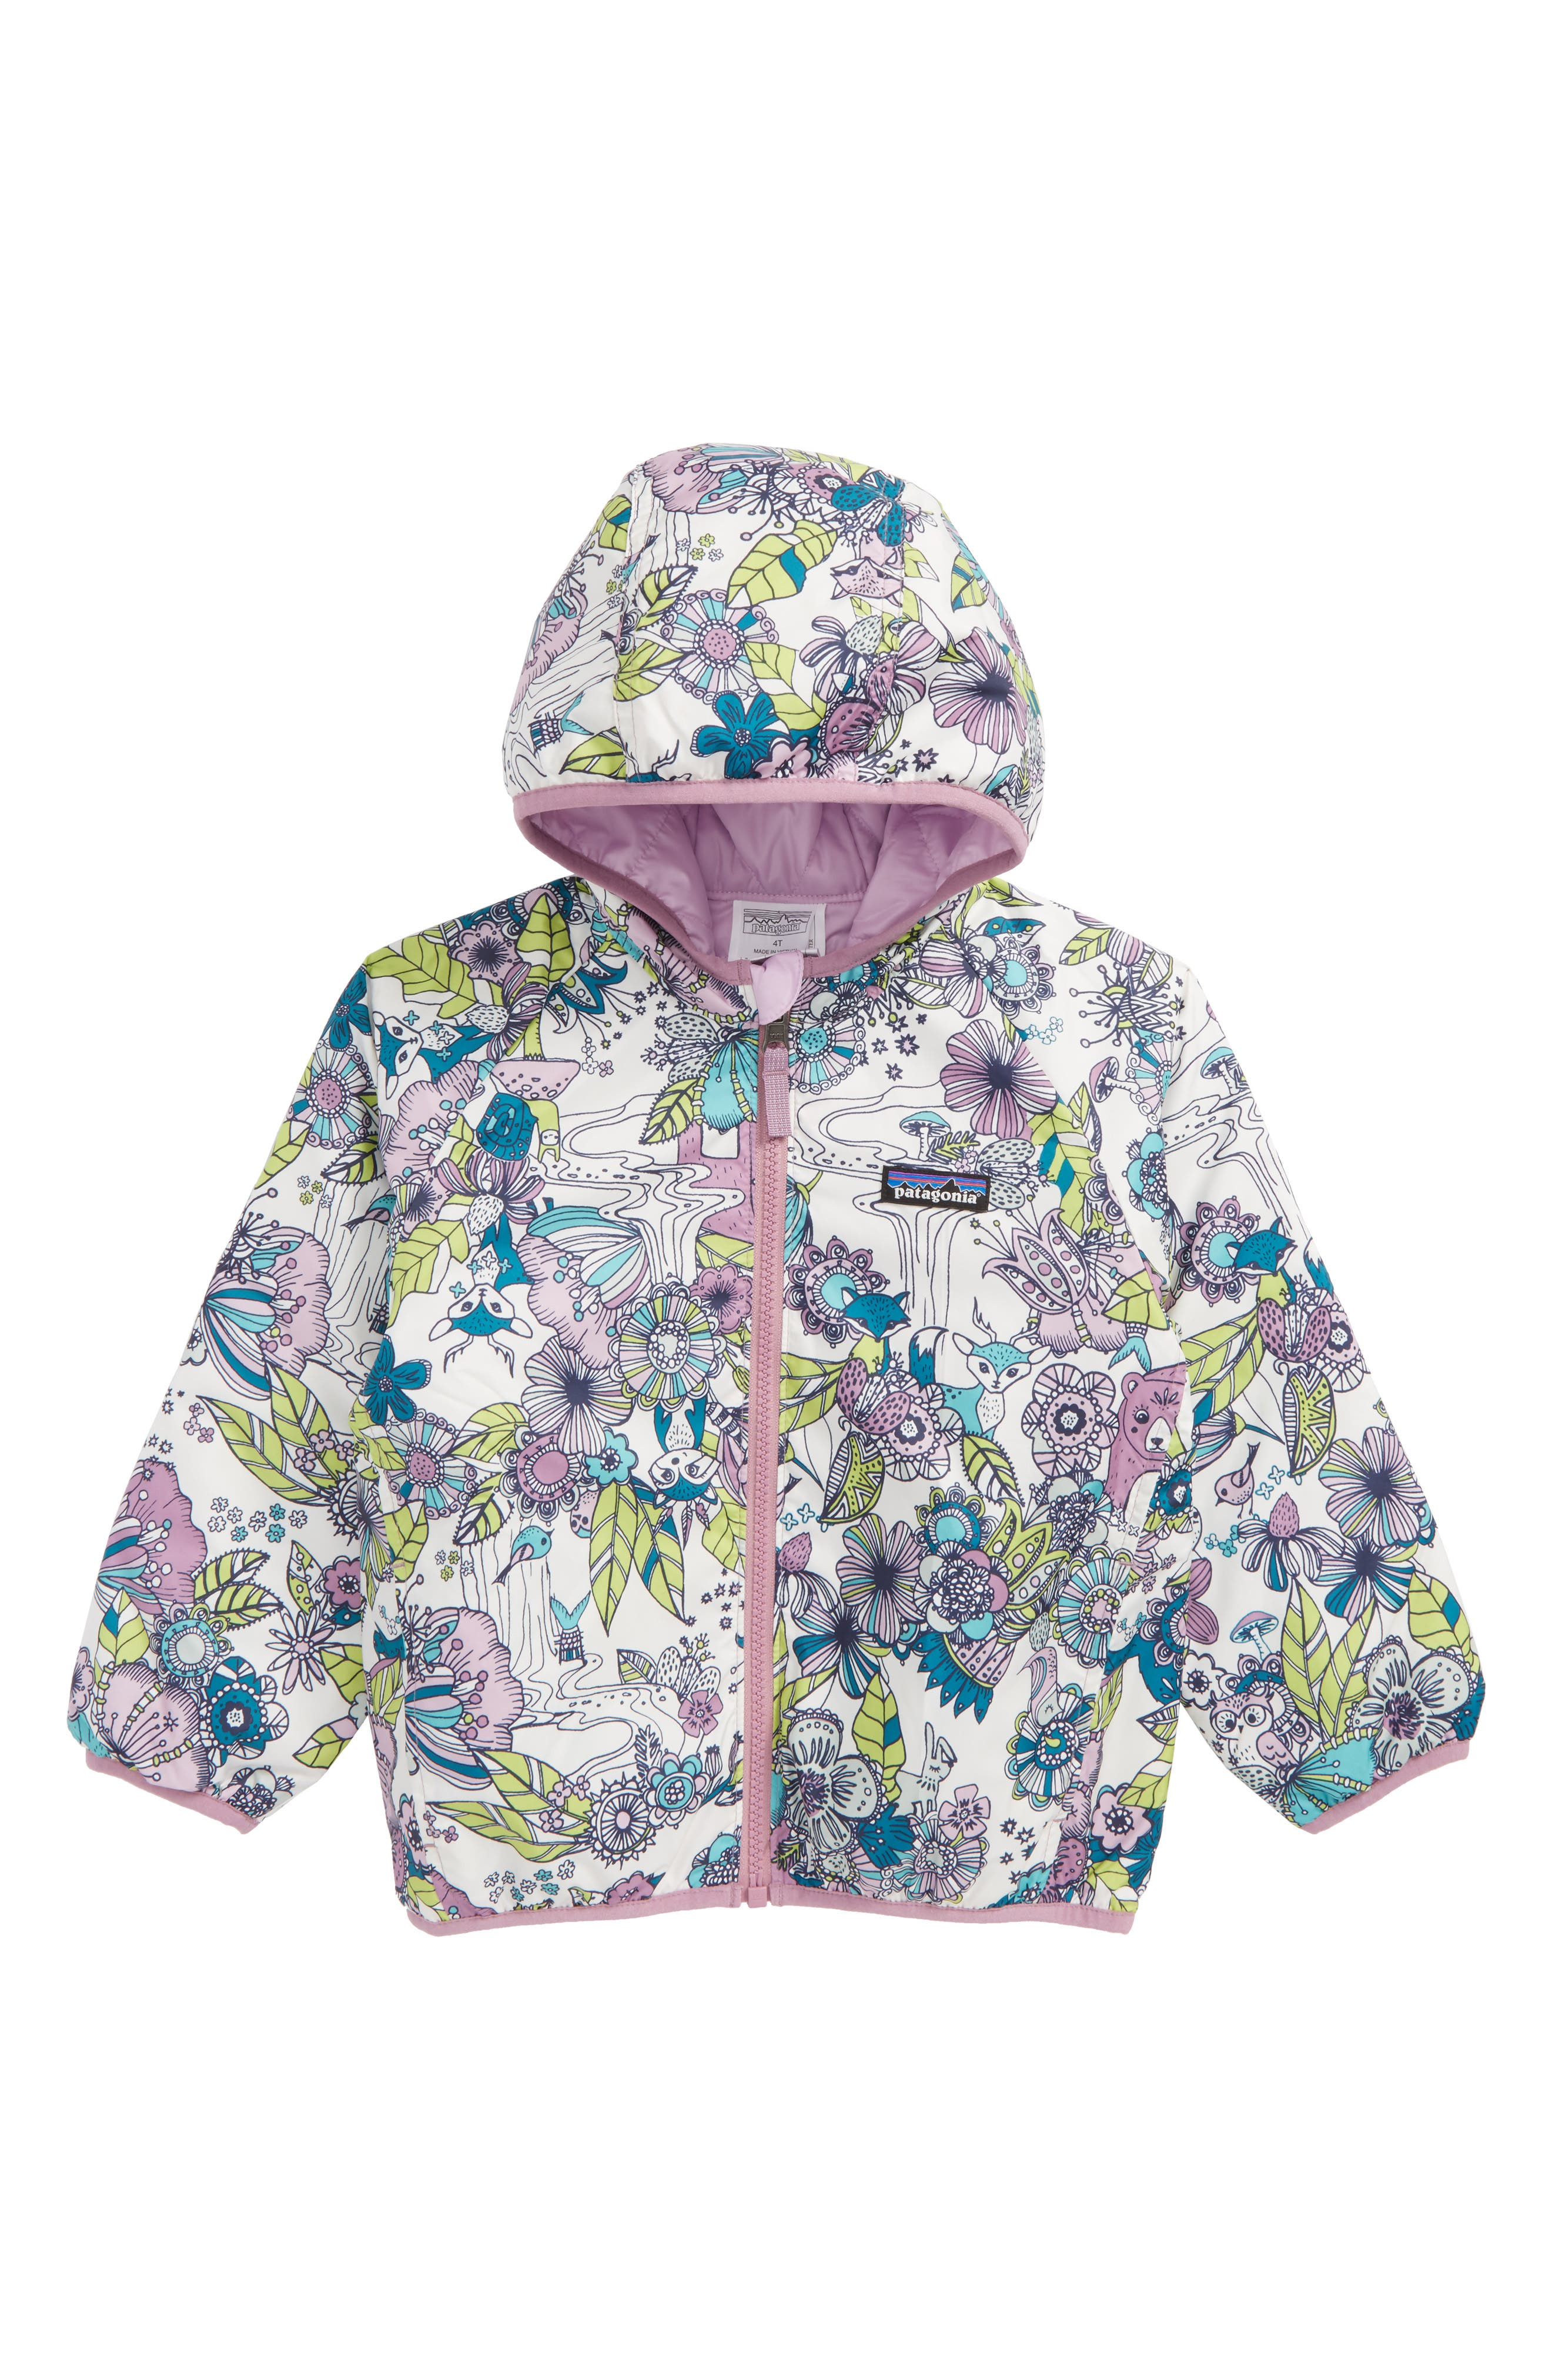 'Puff-Ball' Water Resistant Reversible Hooded Jacket,                         Main,                         color, Cuddle Puddle Birch White